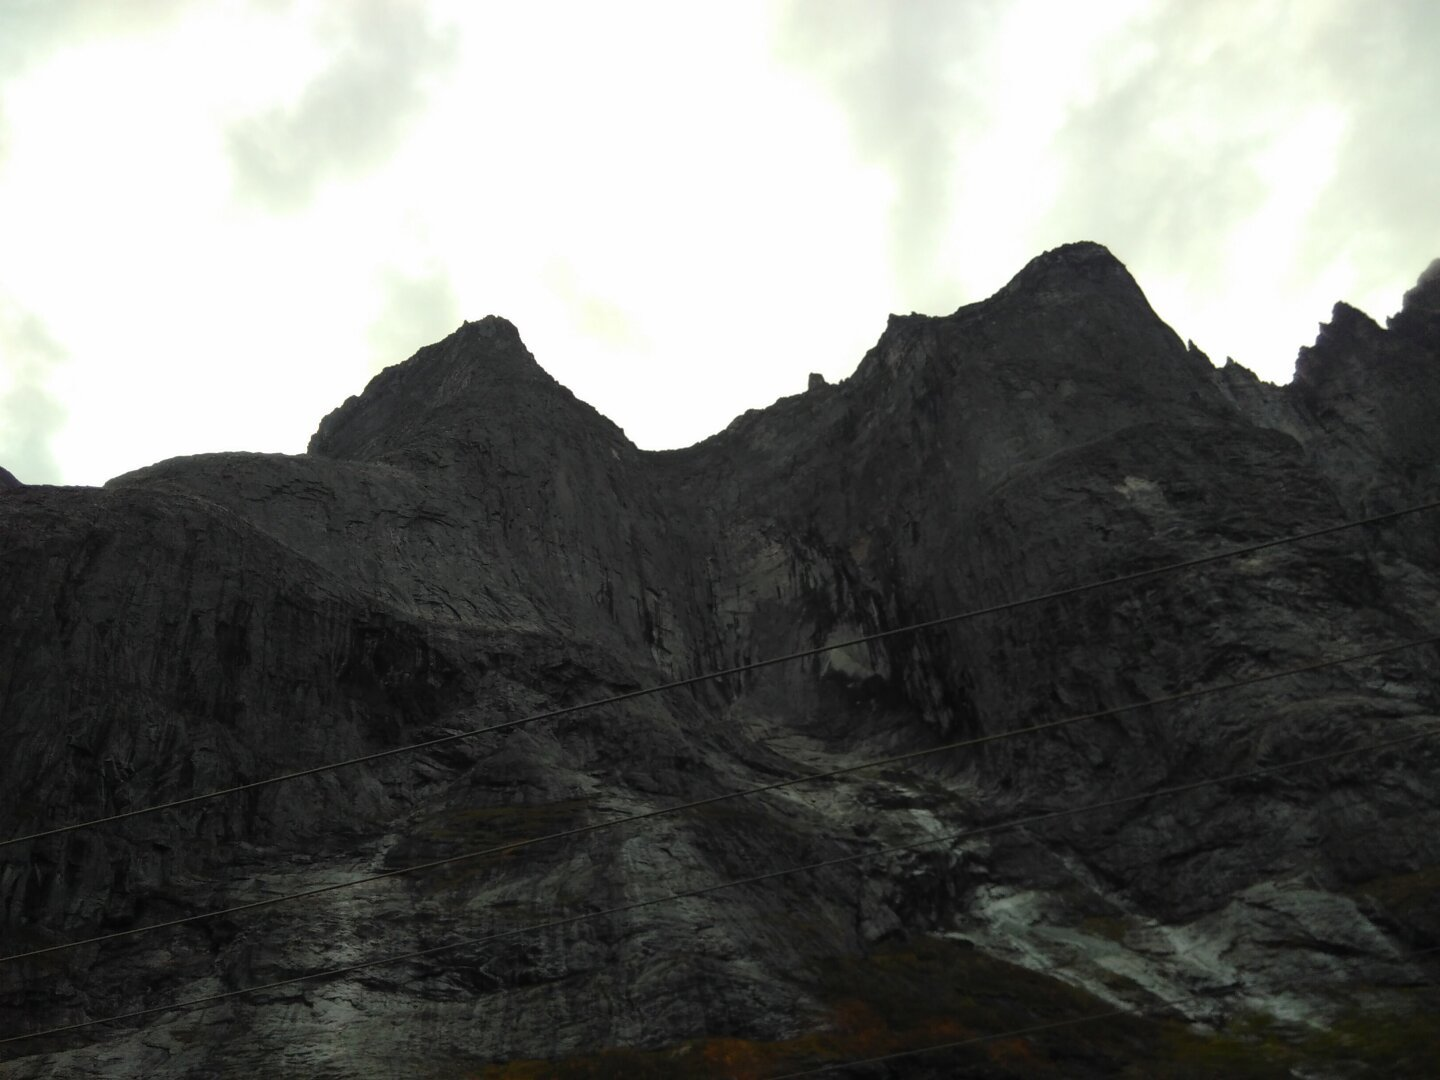 Looming mountains above